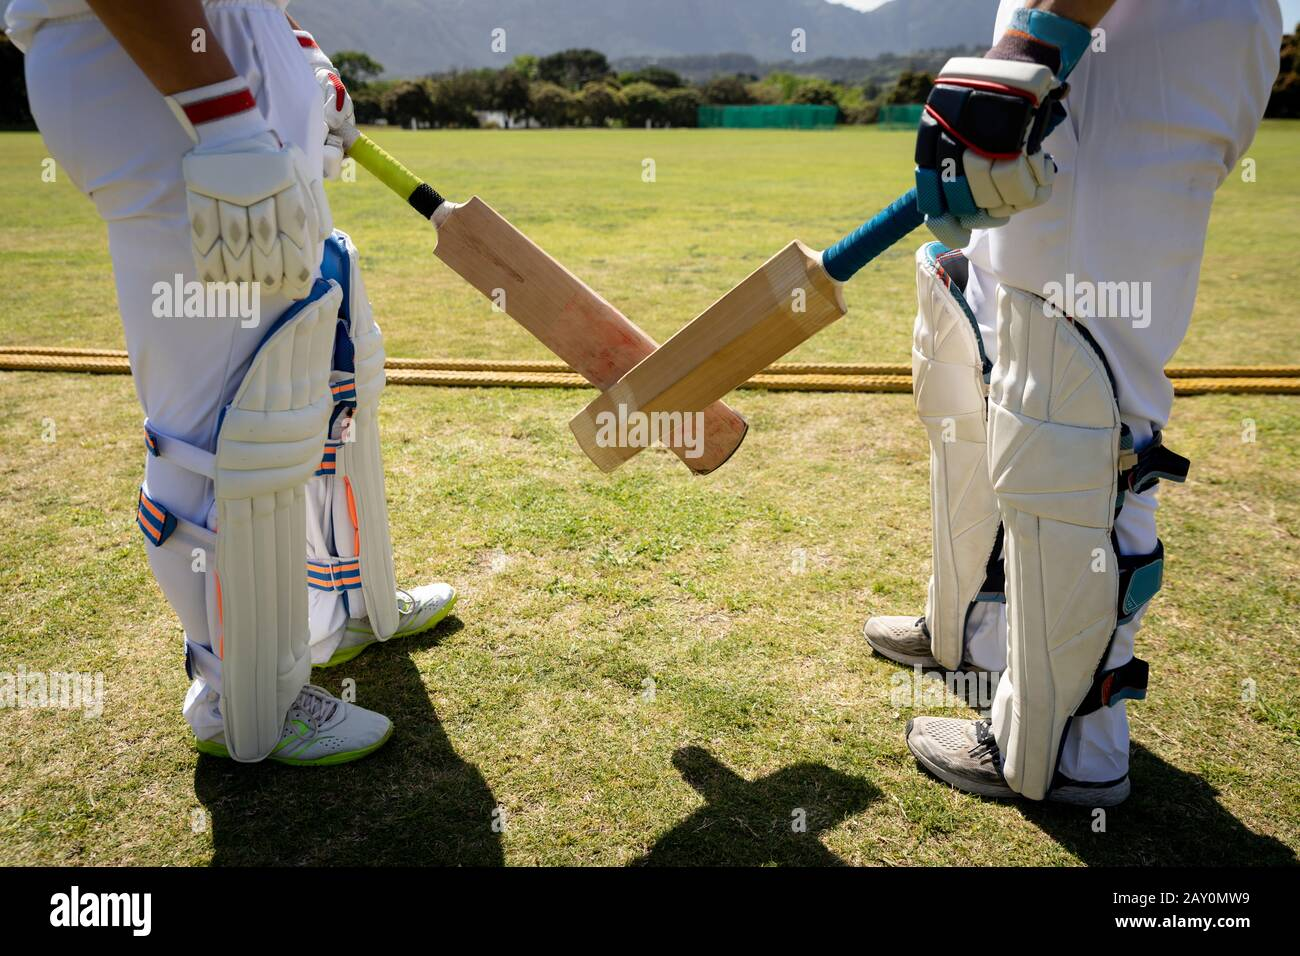 Cricket players face to face on a pitch Stock Photo